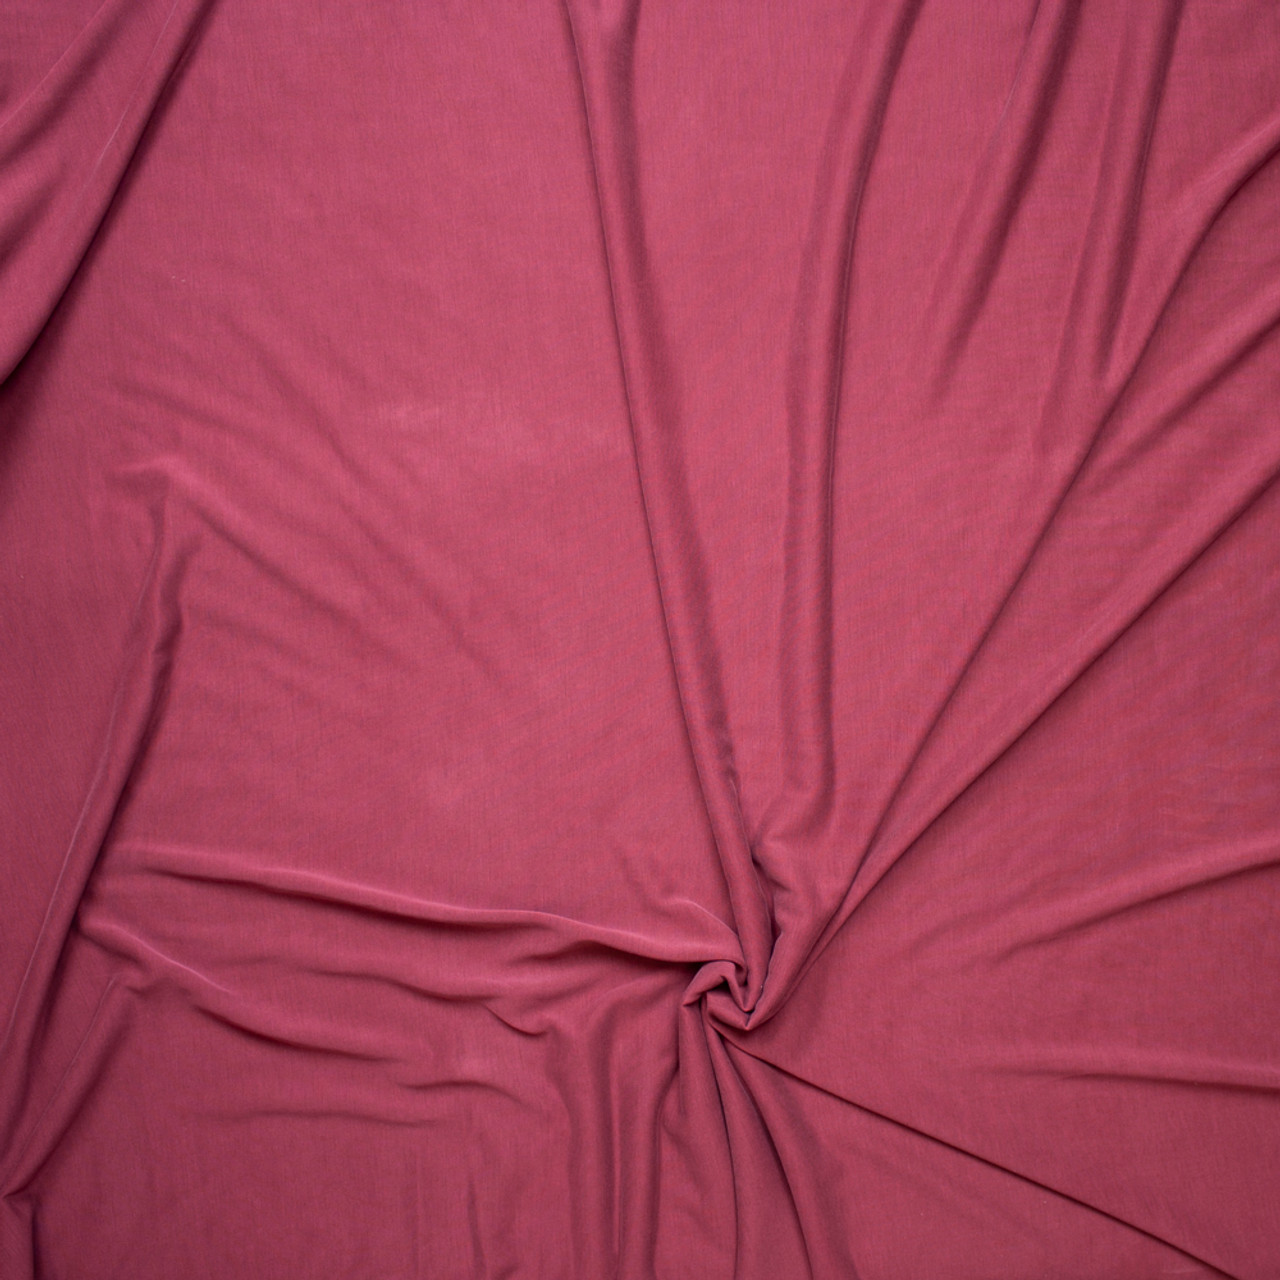 31c29c6216d ... Cranberry Brushed Poly/Modal Jersey Knit Fabric By The Yard - Wide shot